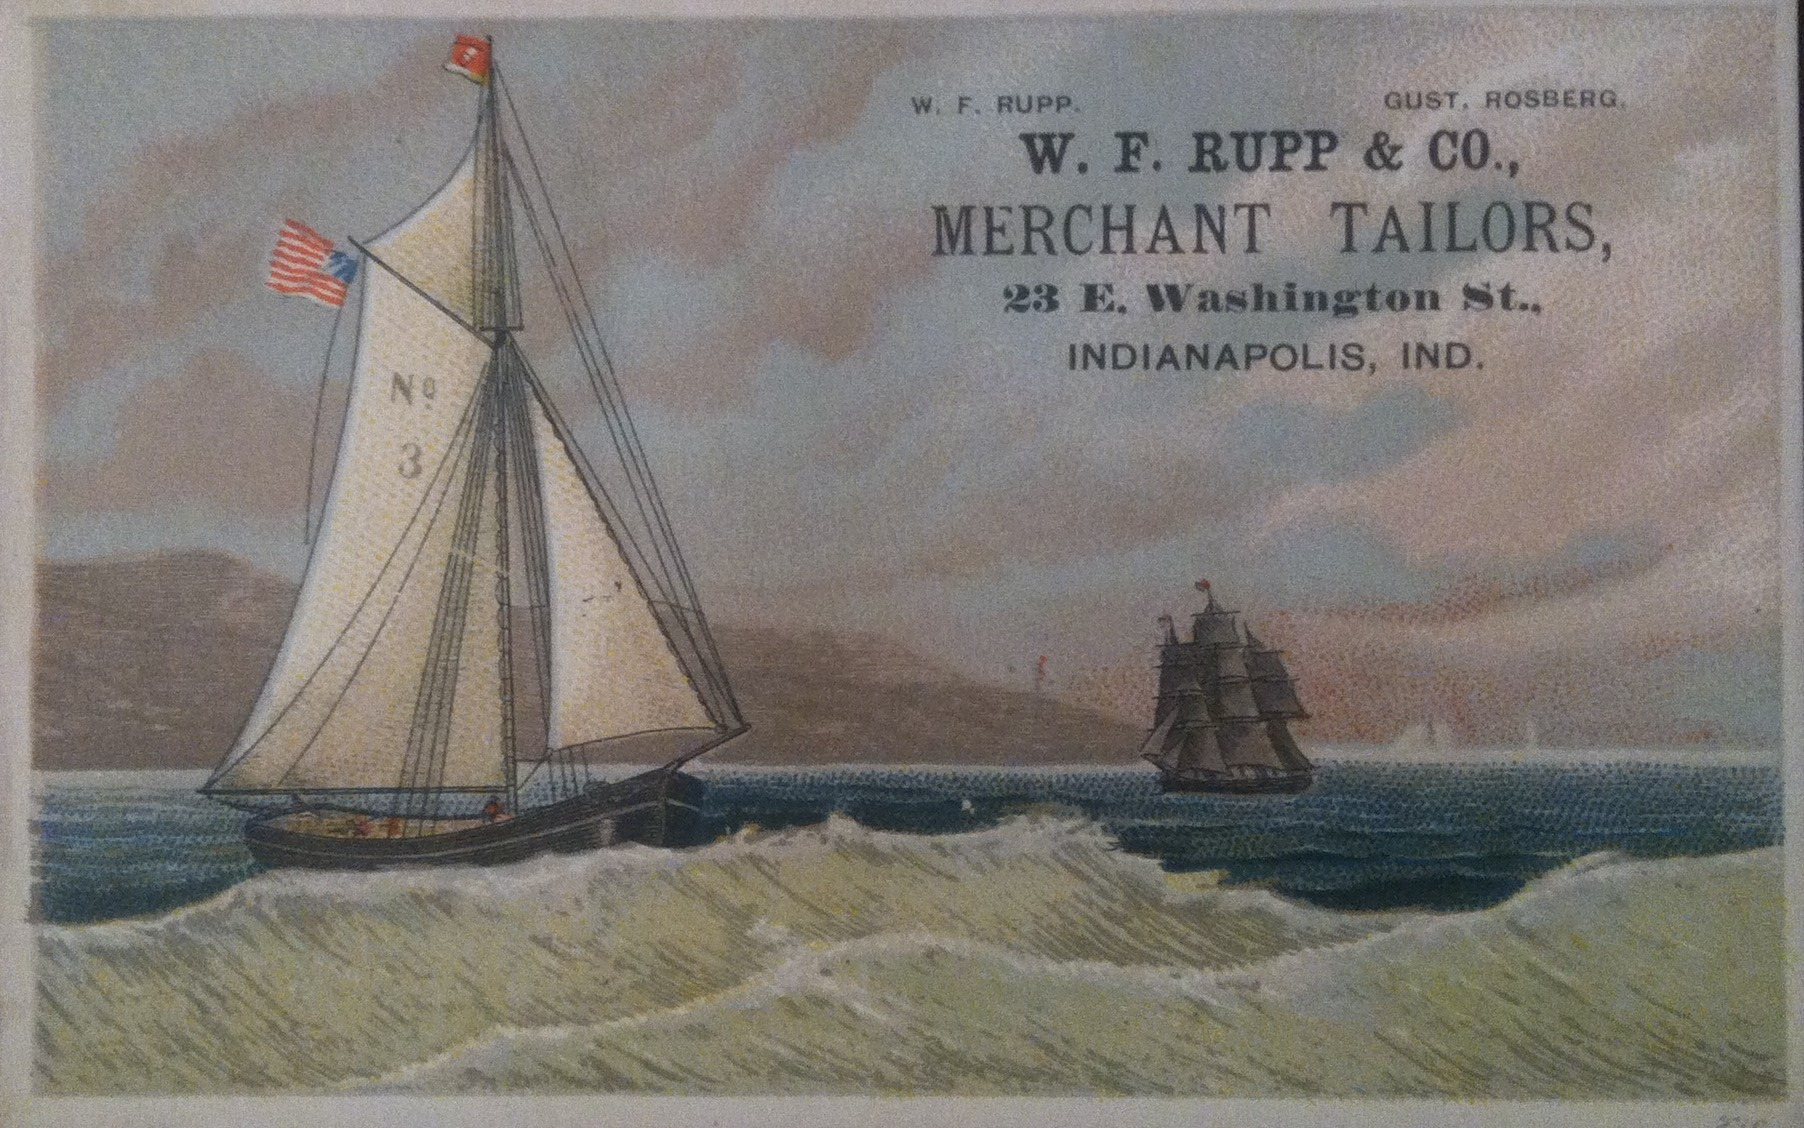 Sunday Adverts: W.F. Rupp & Co. Merchant Tailors